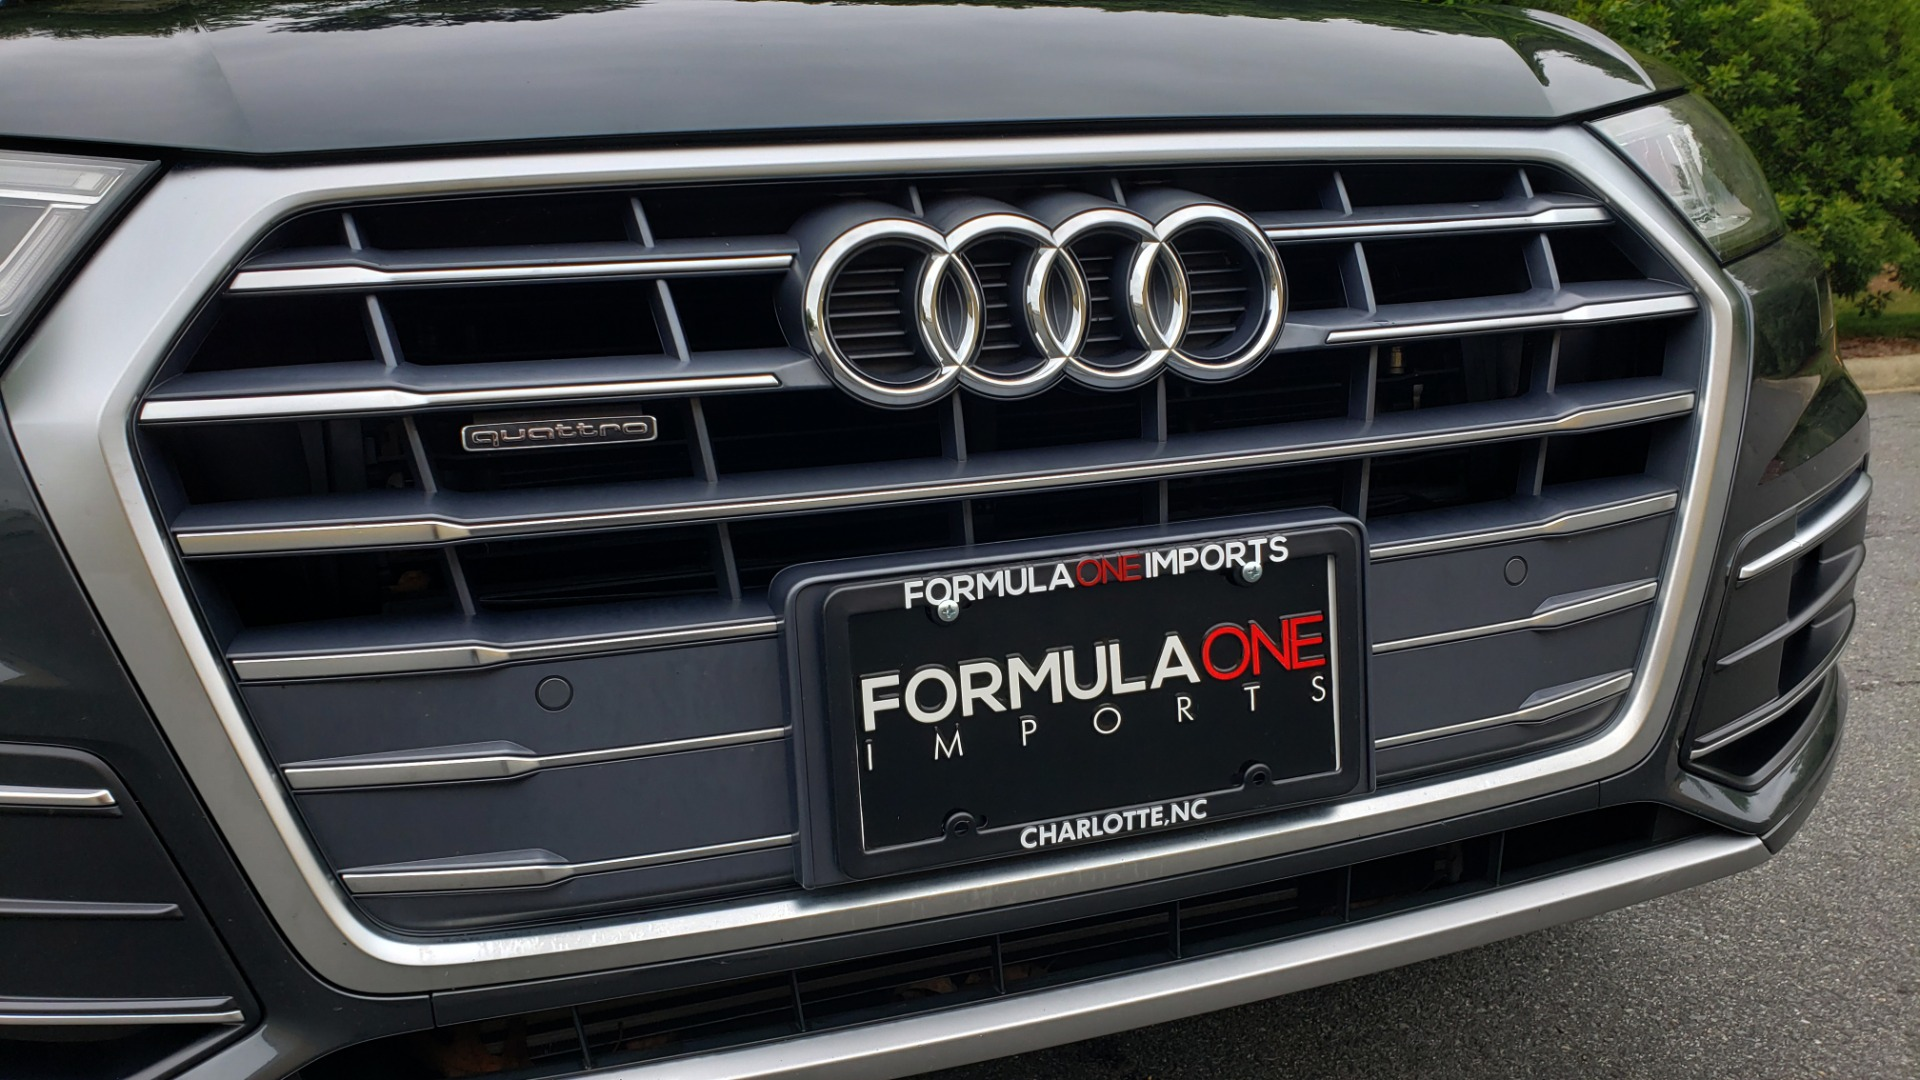 Used 2018 Audi Q5 PREMIUM PLUS / S-TRONIC / NAV / PANO-ROOF / PARK SYS PLUS for sale Sold at Formula Imports in Charlotte NC 28227 24